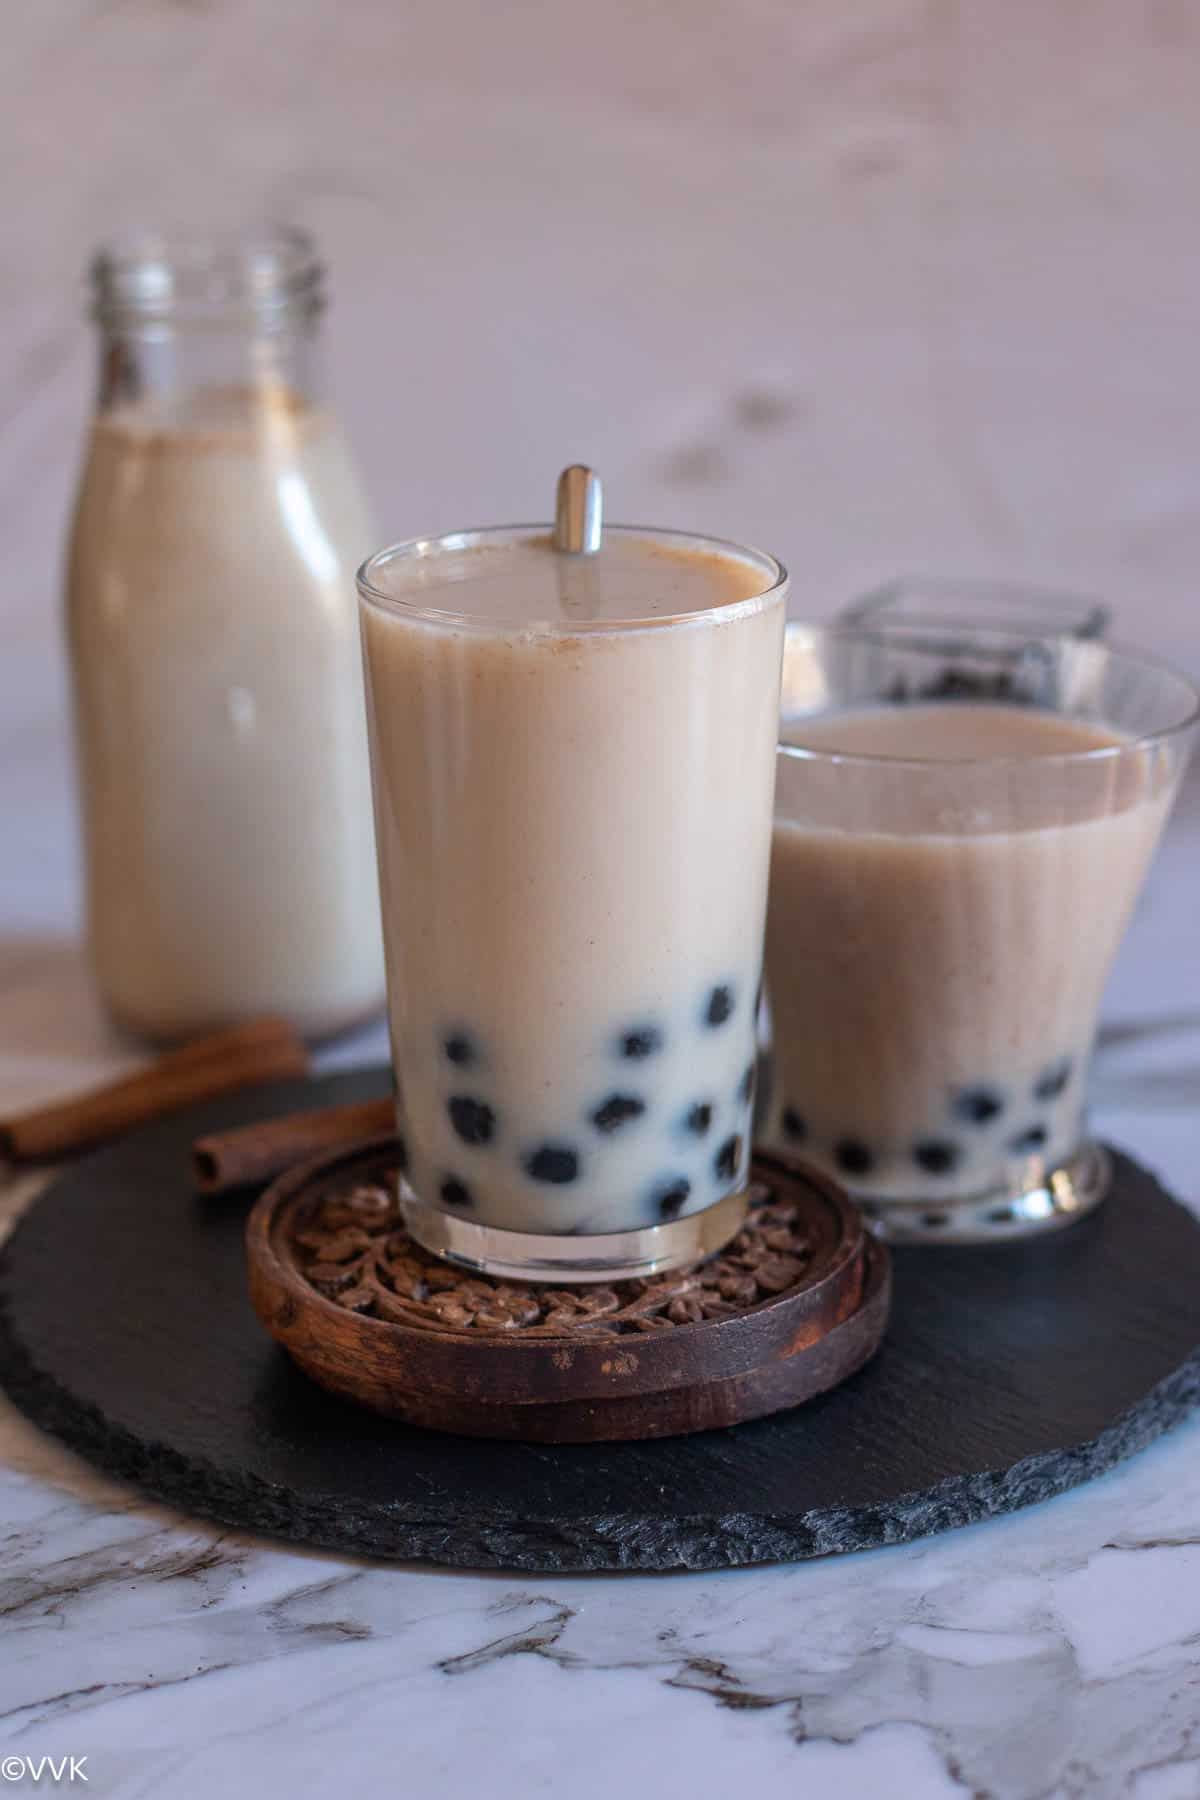 horchata served in tall glass with spoon inside placed on wooden coaster